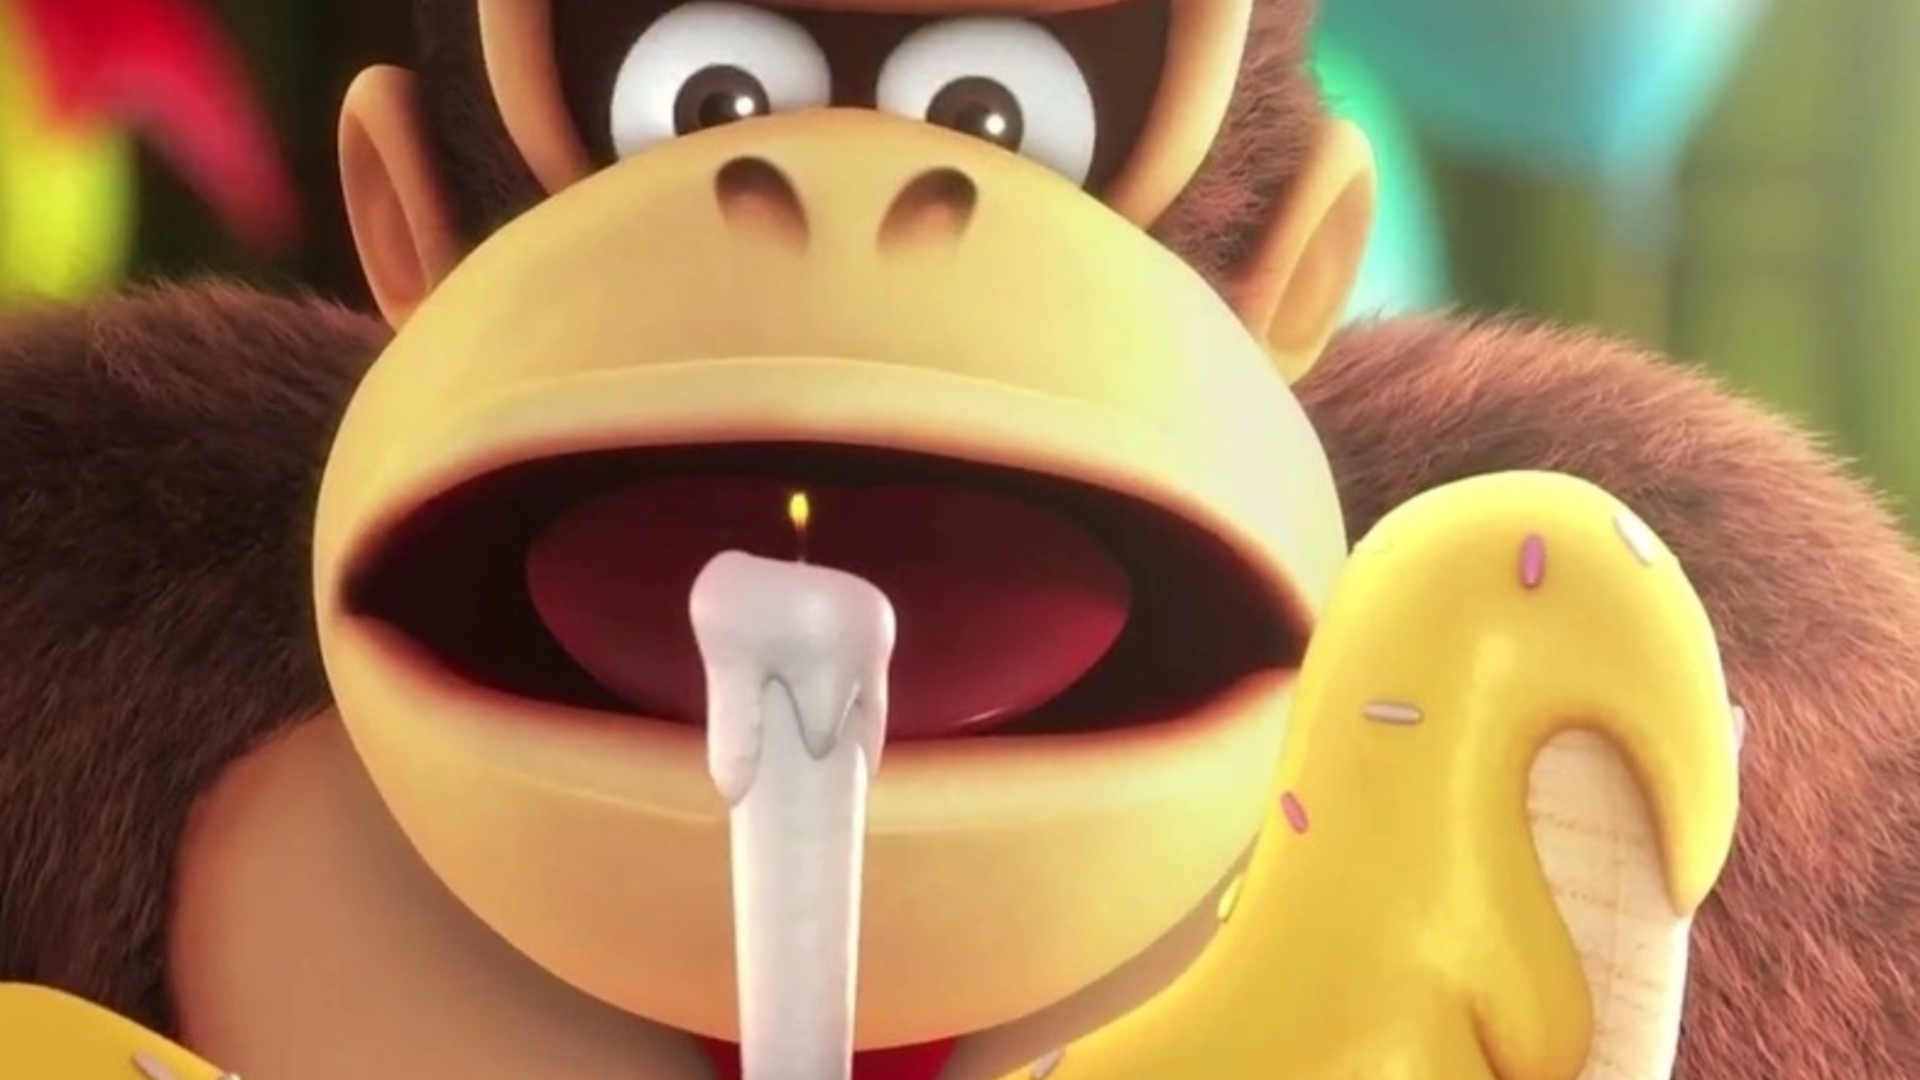 UK chart: Donkey Kong Country enters in 9th